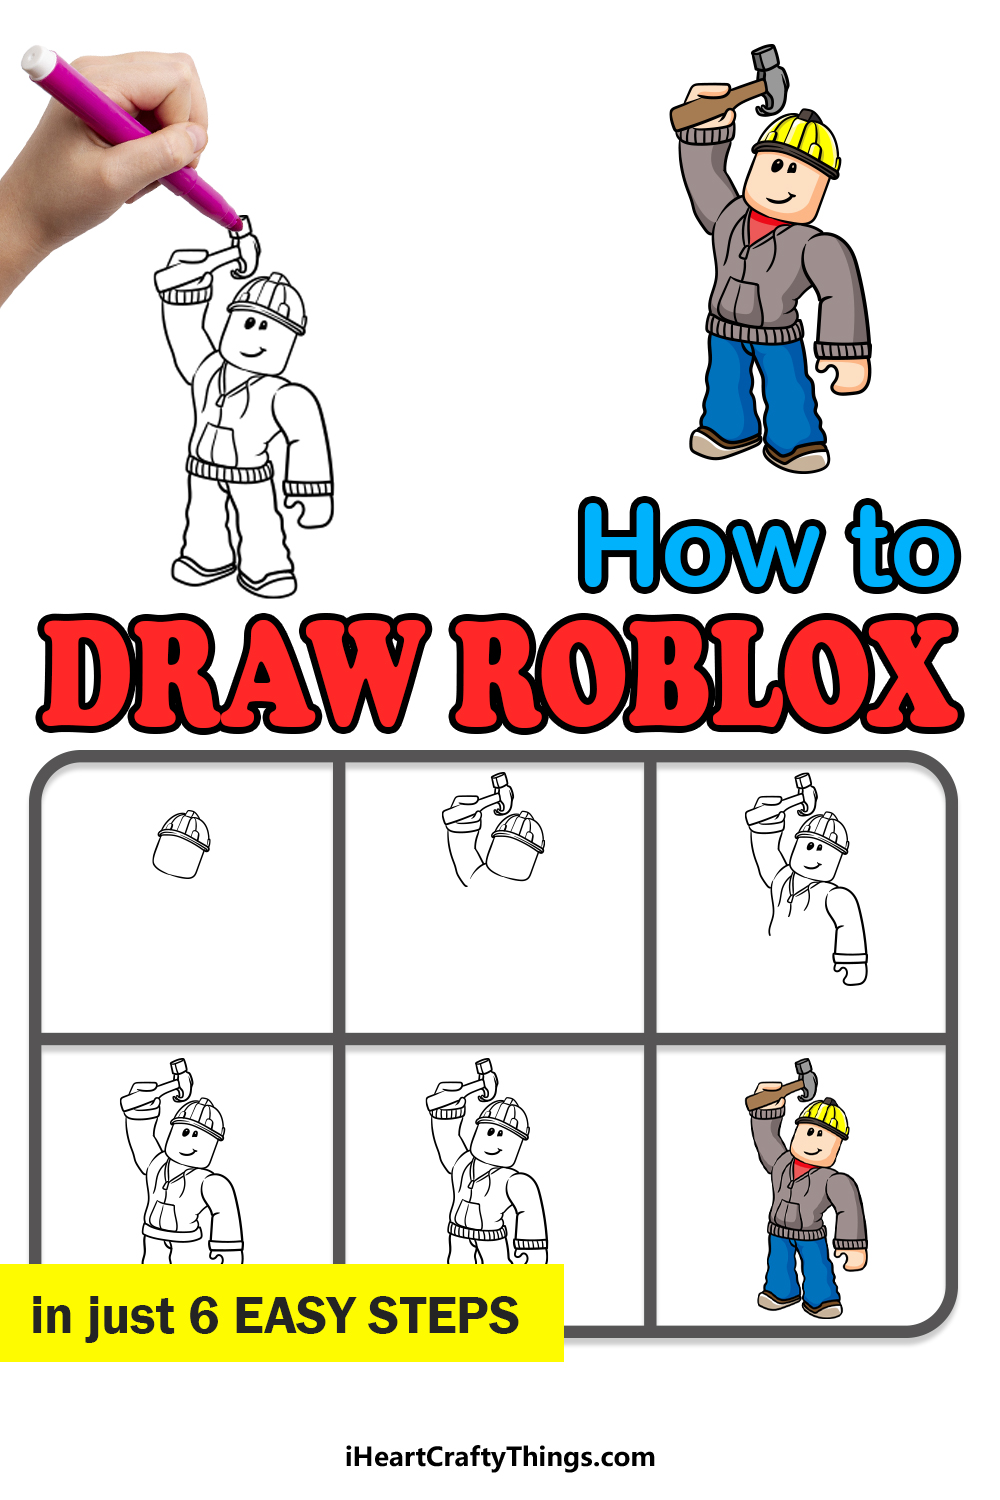 how to draw roblox in 6 easy steps